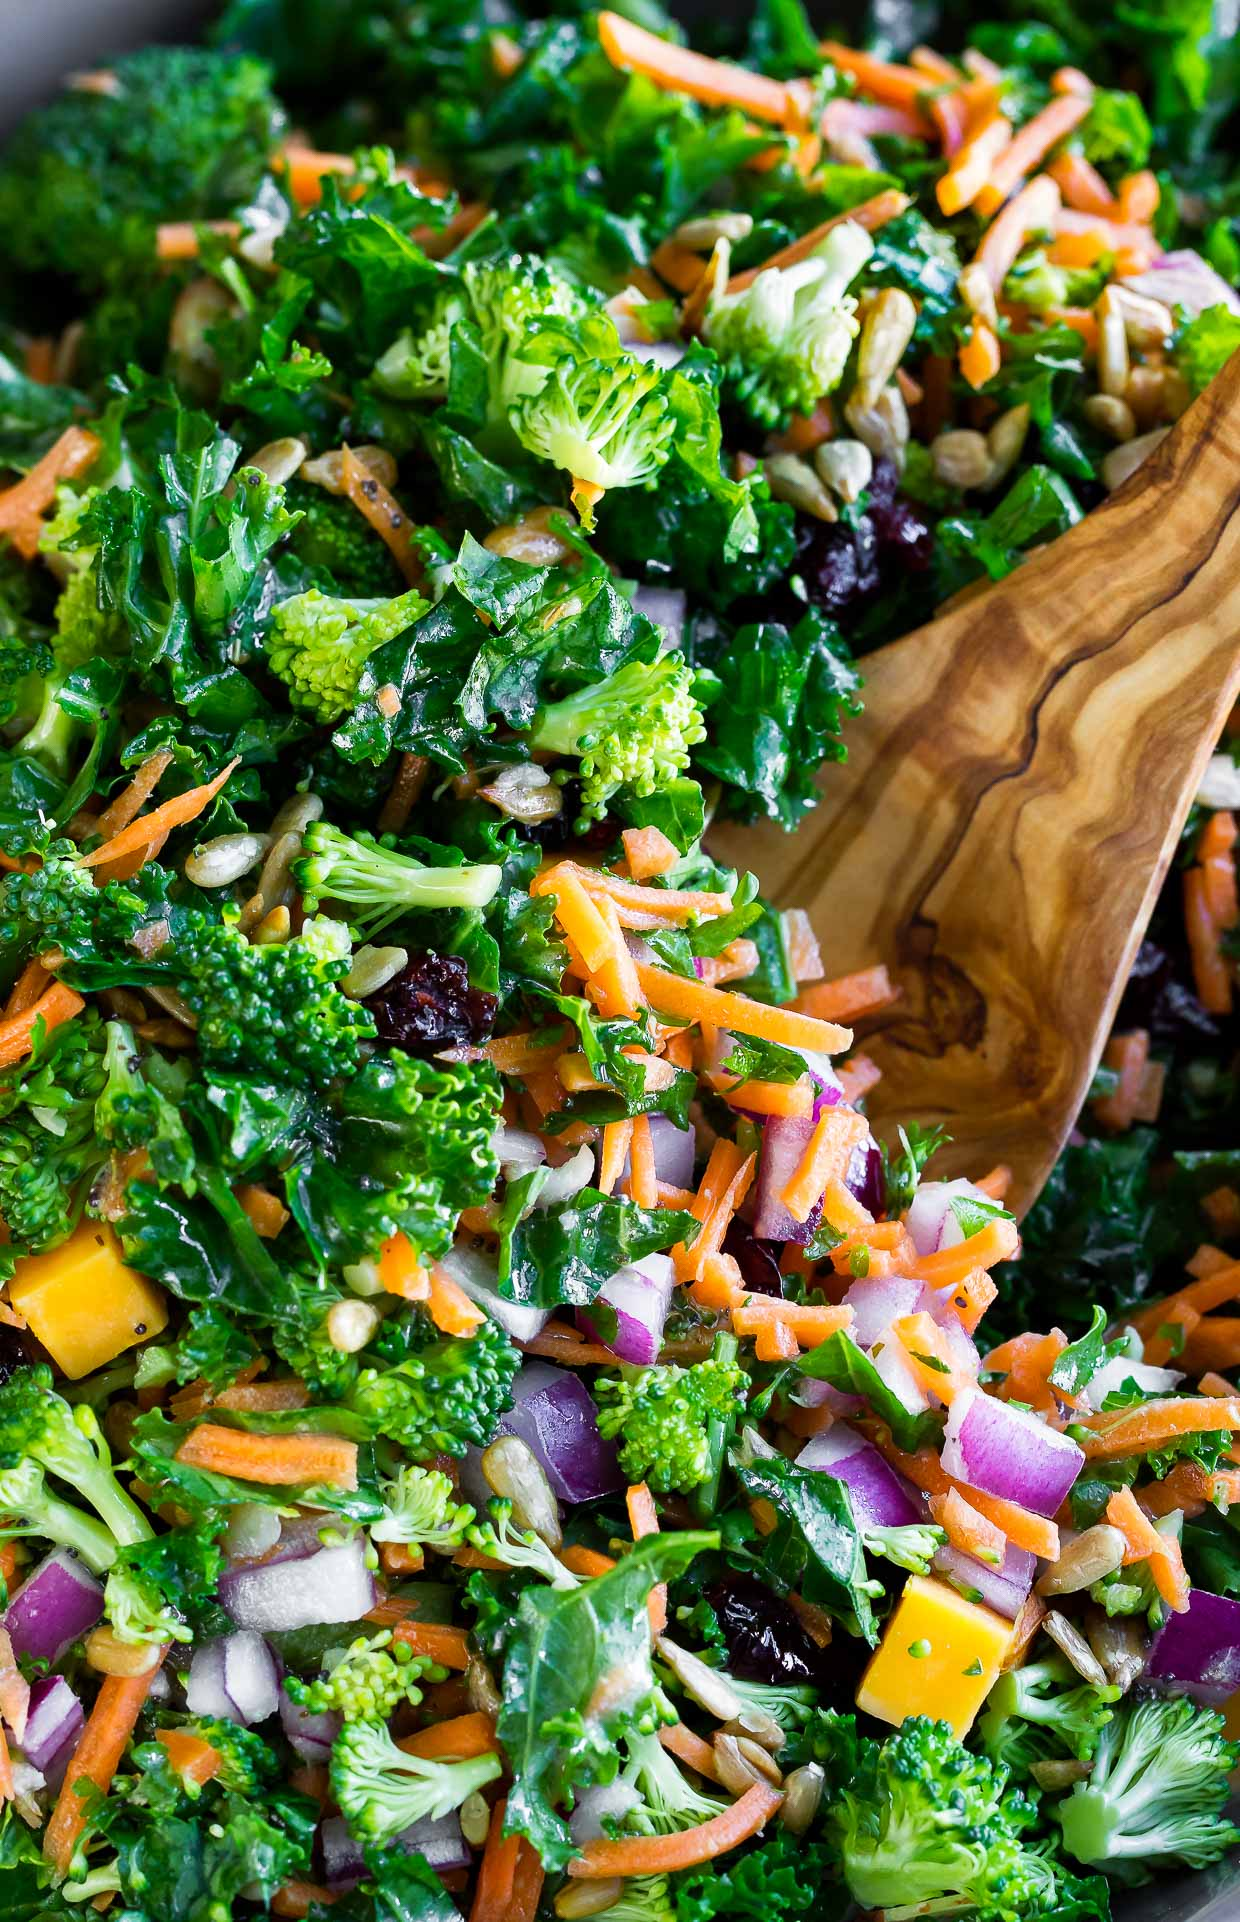 Broccoli Kale Salad With Lemon Dressing Peas And Crayons